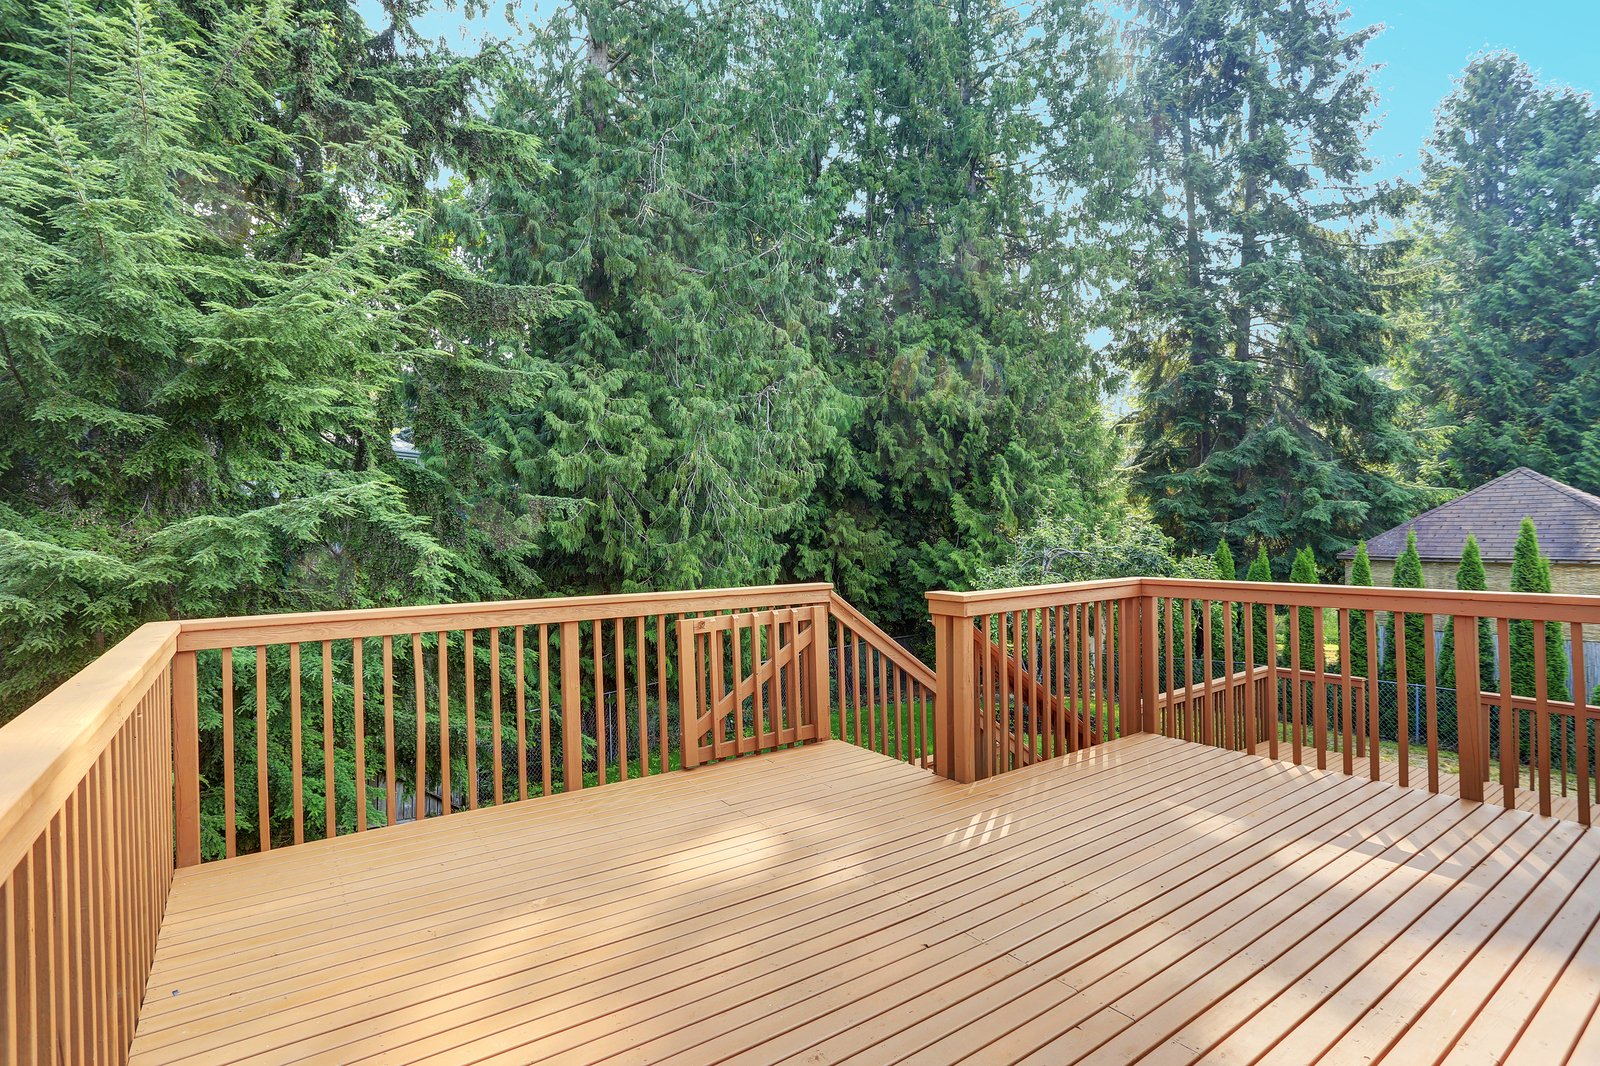 Refresh Your Yard with Hesperia Fence and Deck Staining This Summer